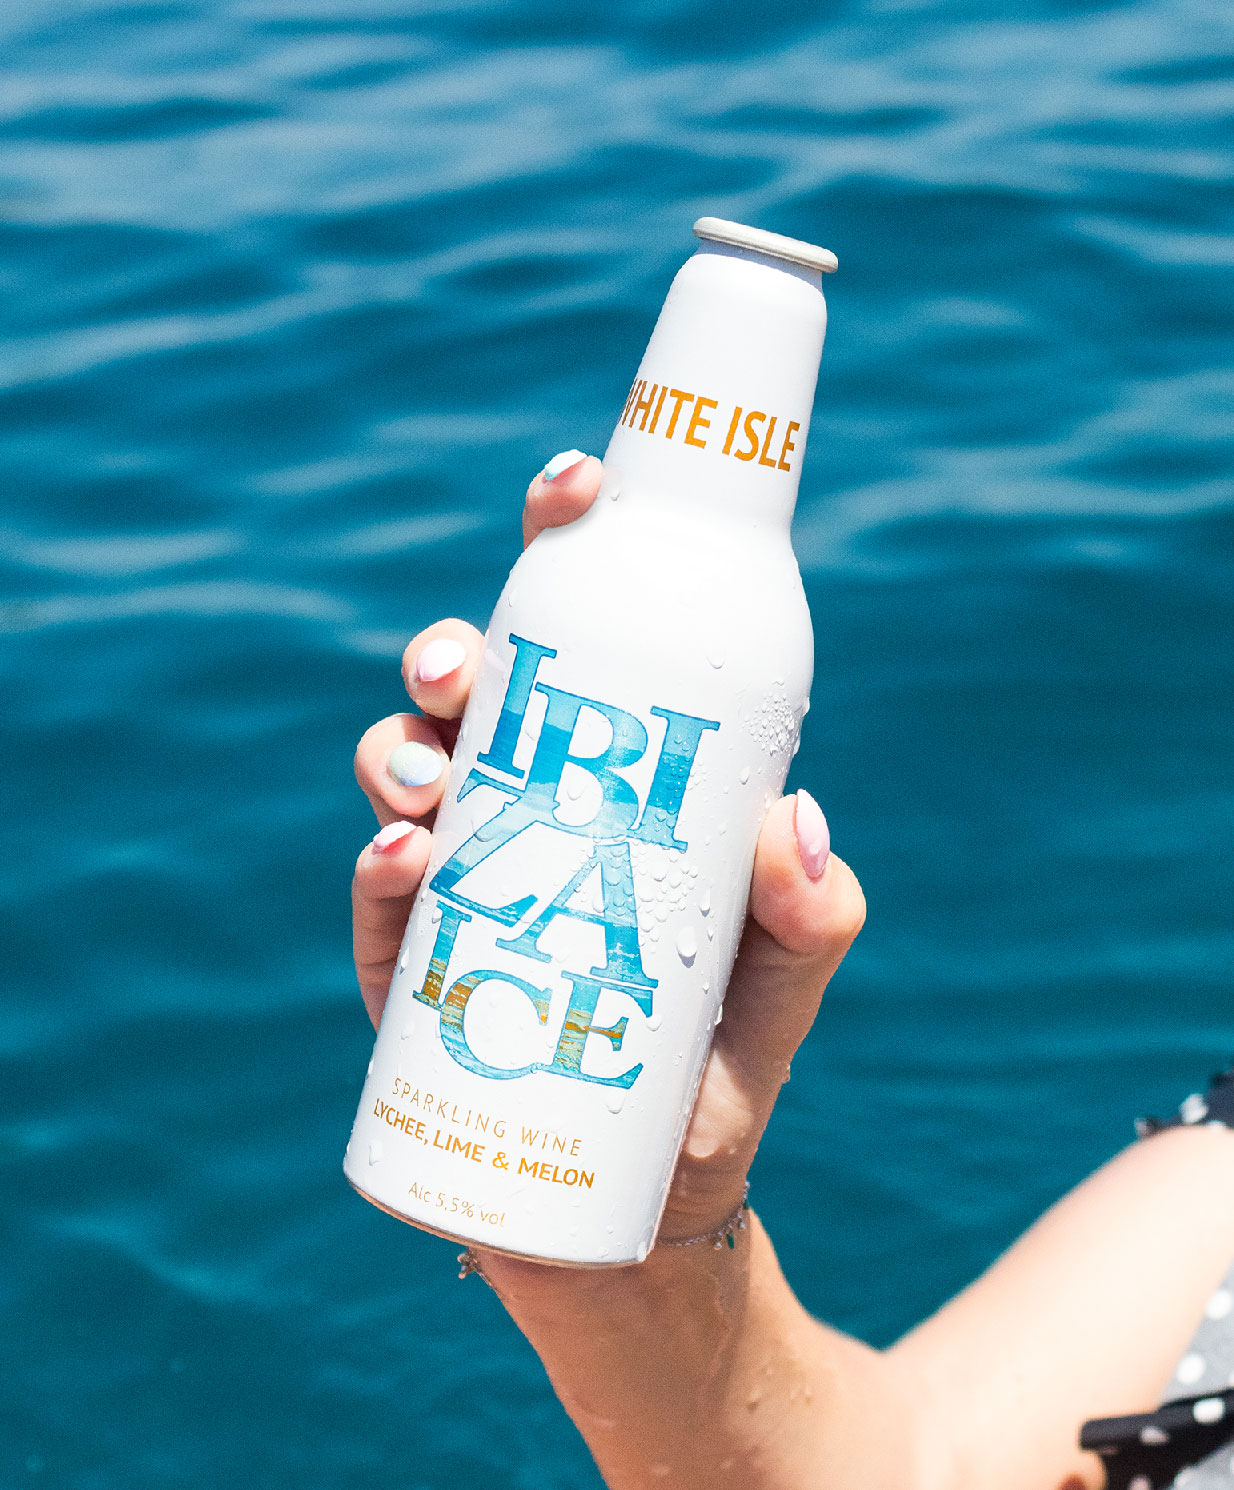 Ibiza Ice - Fotografie - Social Media - White Isle - Zee - Header